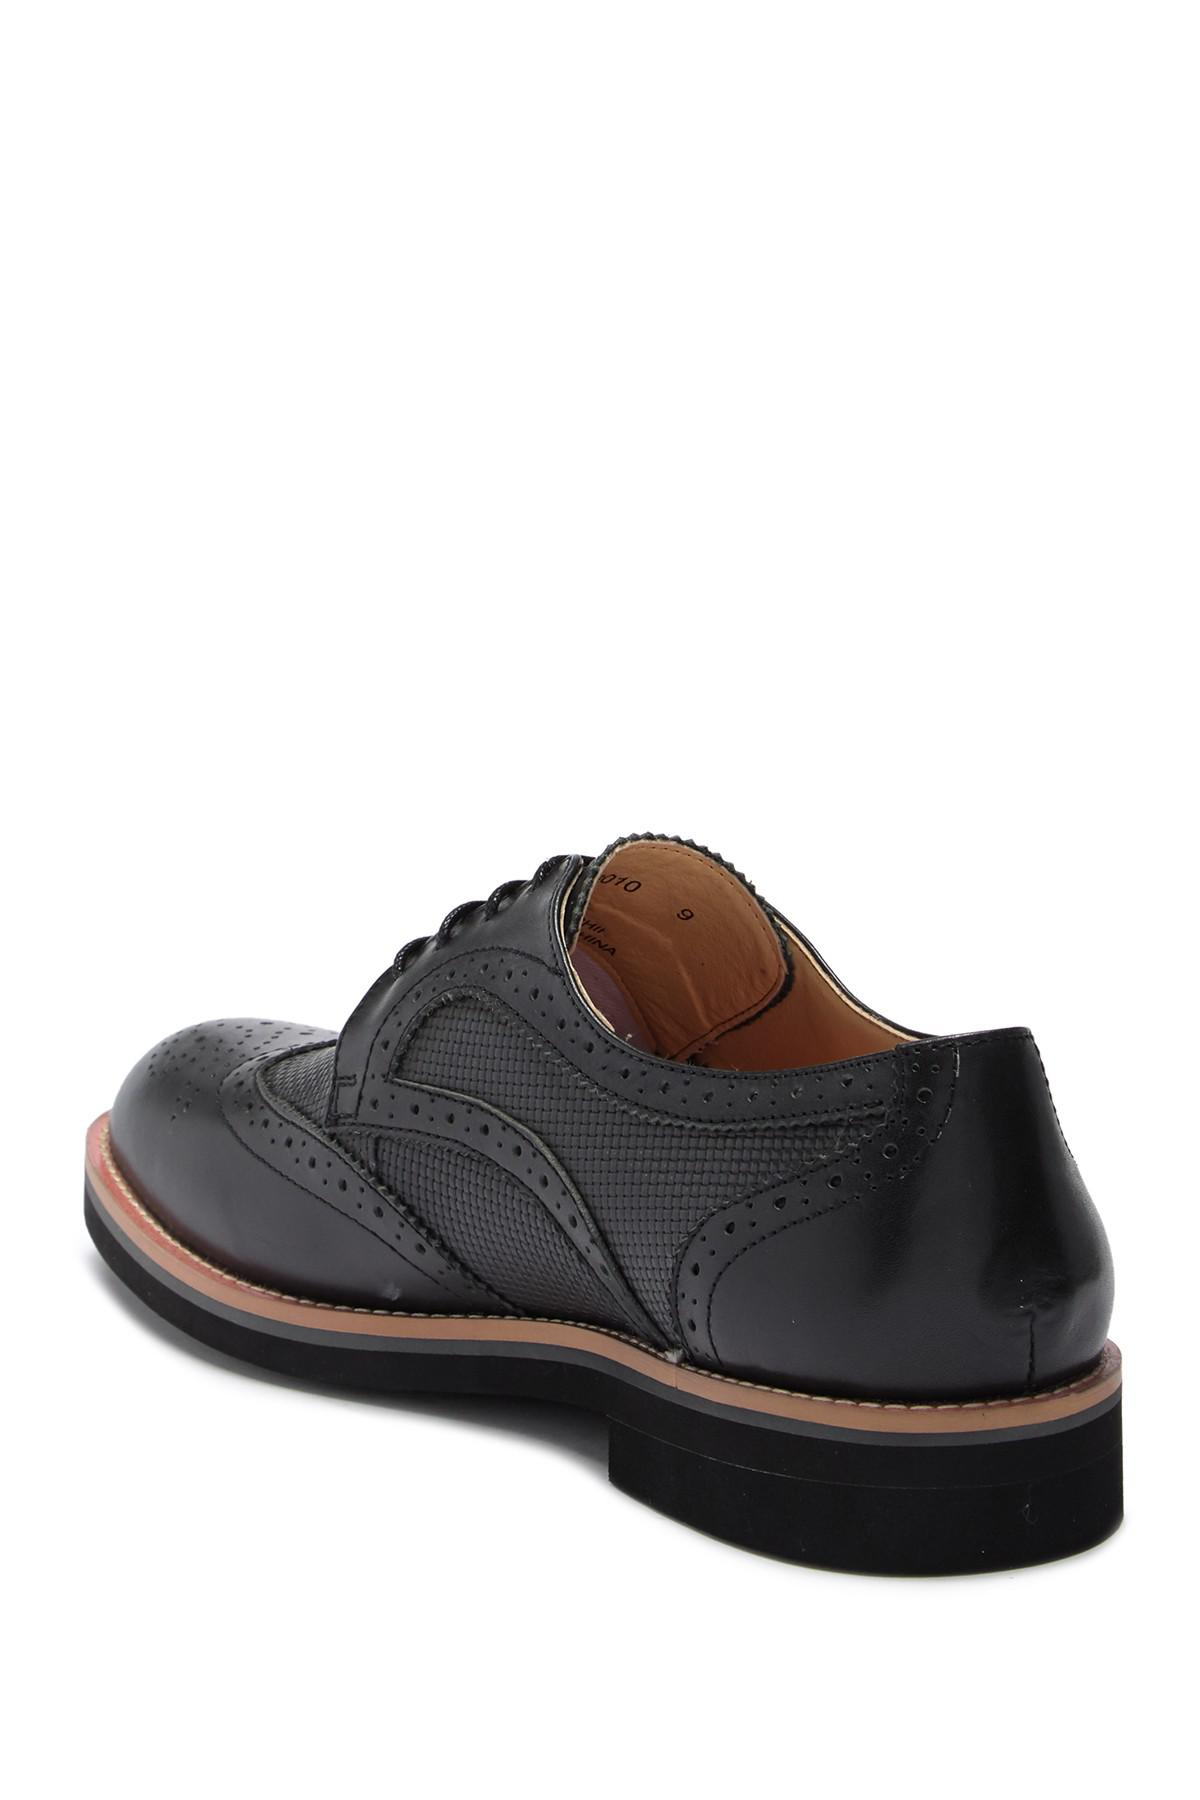 English Laundry Mens Cleave Oxford